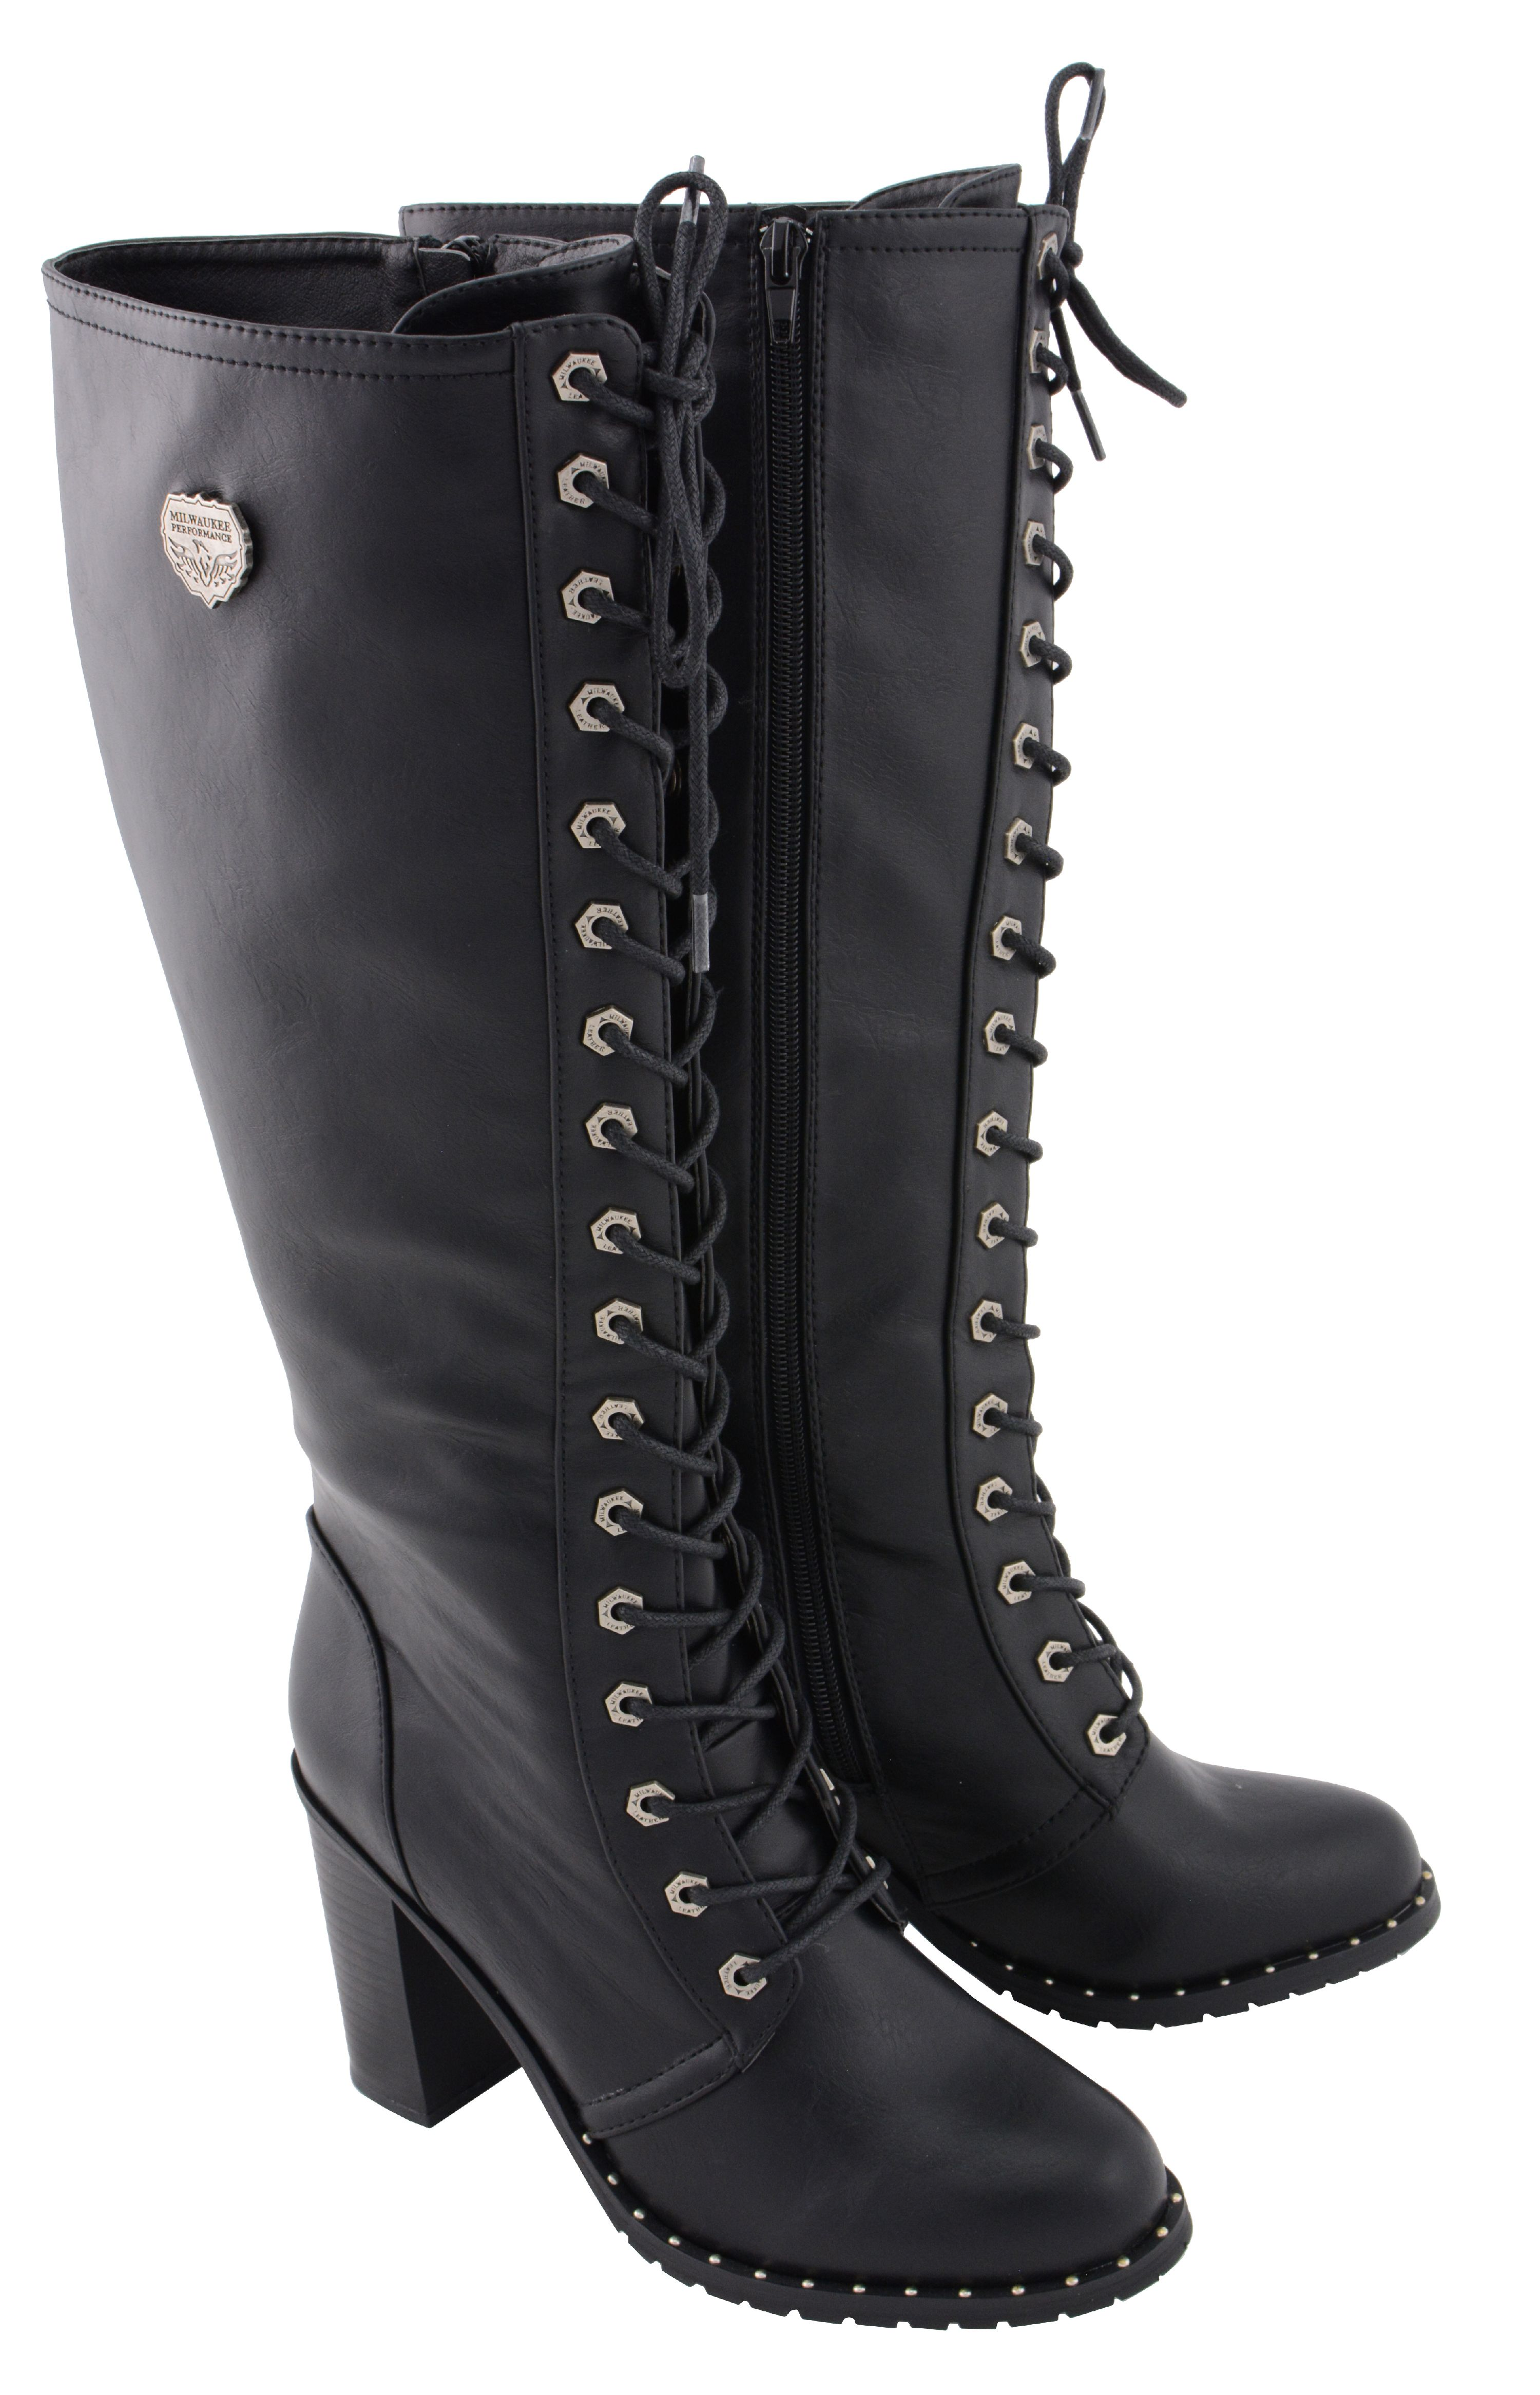 Milwaukee Performance MBL9442 Women Black Lace-Up Tall Boots with Platform Heel 9